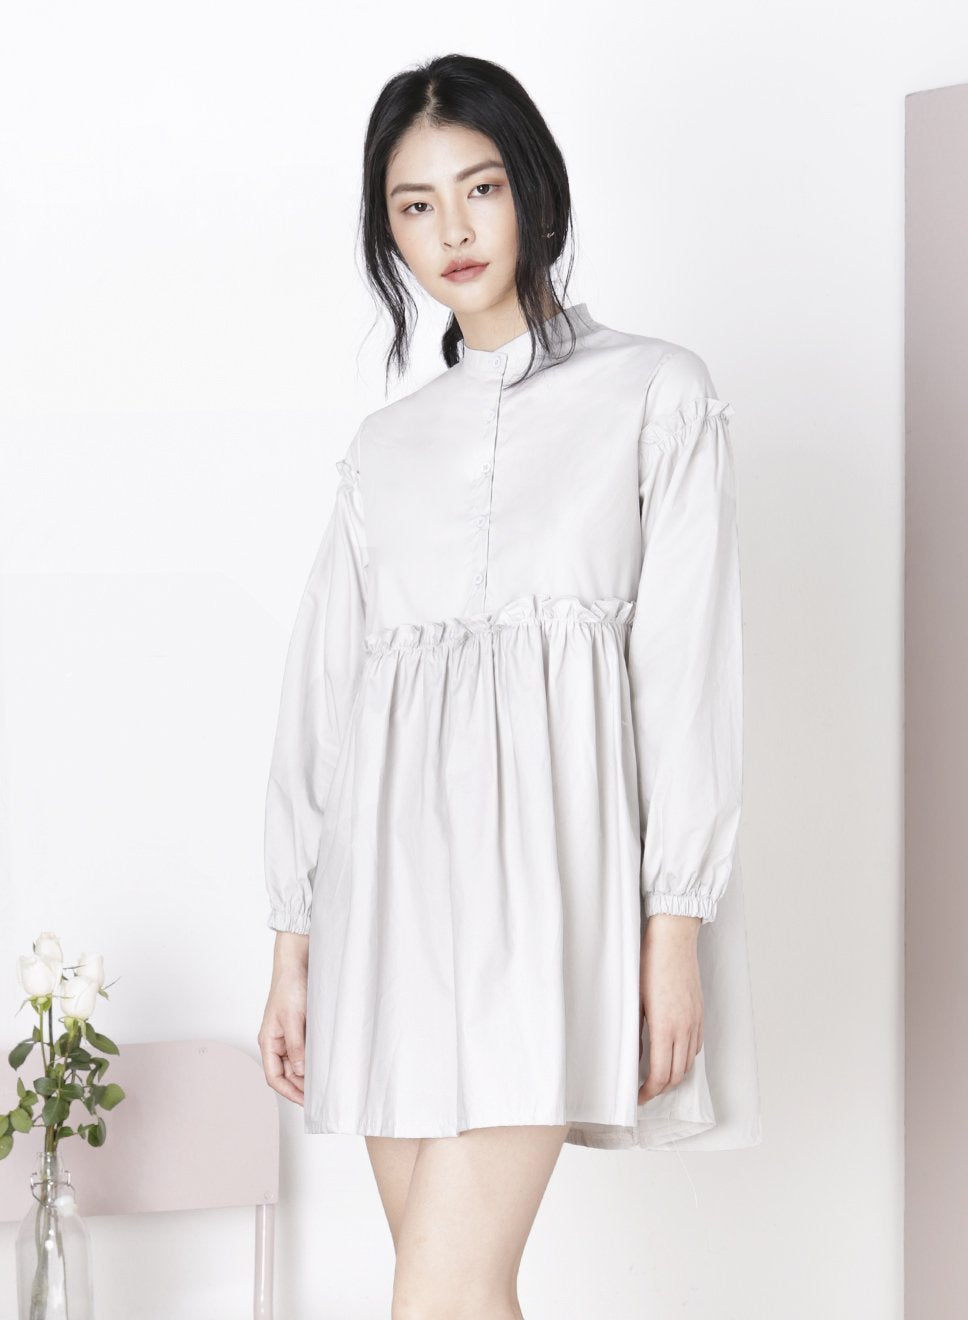 TRAIPSE Ruffled Shirt Dress (Grey) at $ 21.50 only sold at And Well Dressed Online Fashion Store Singapore